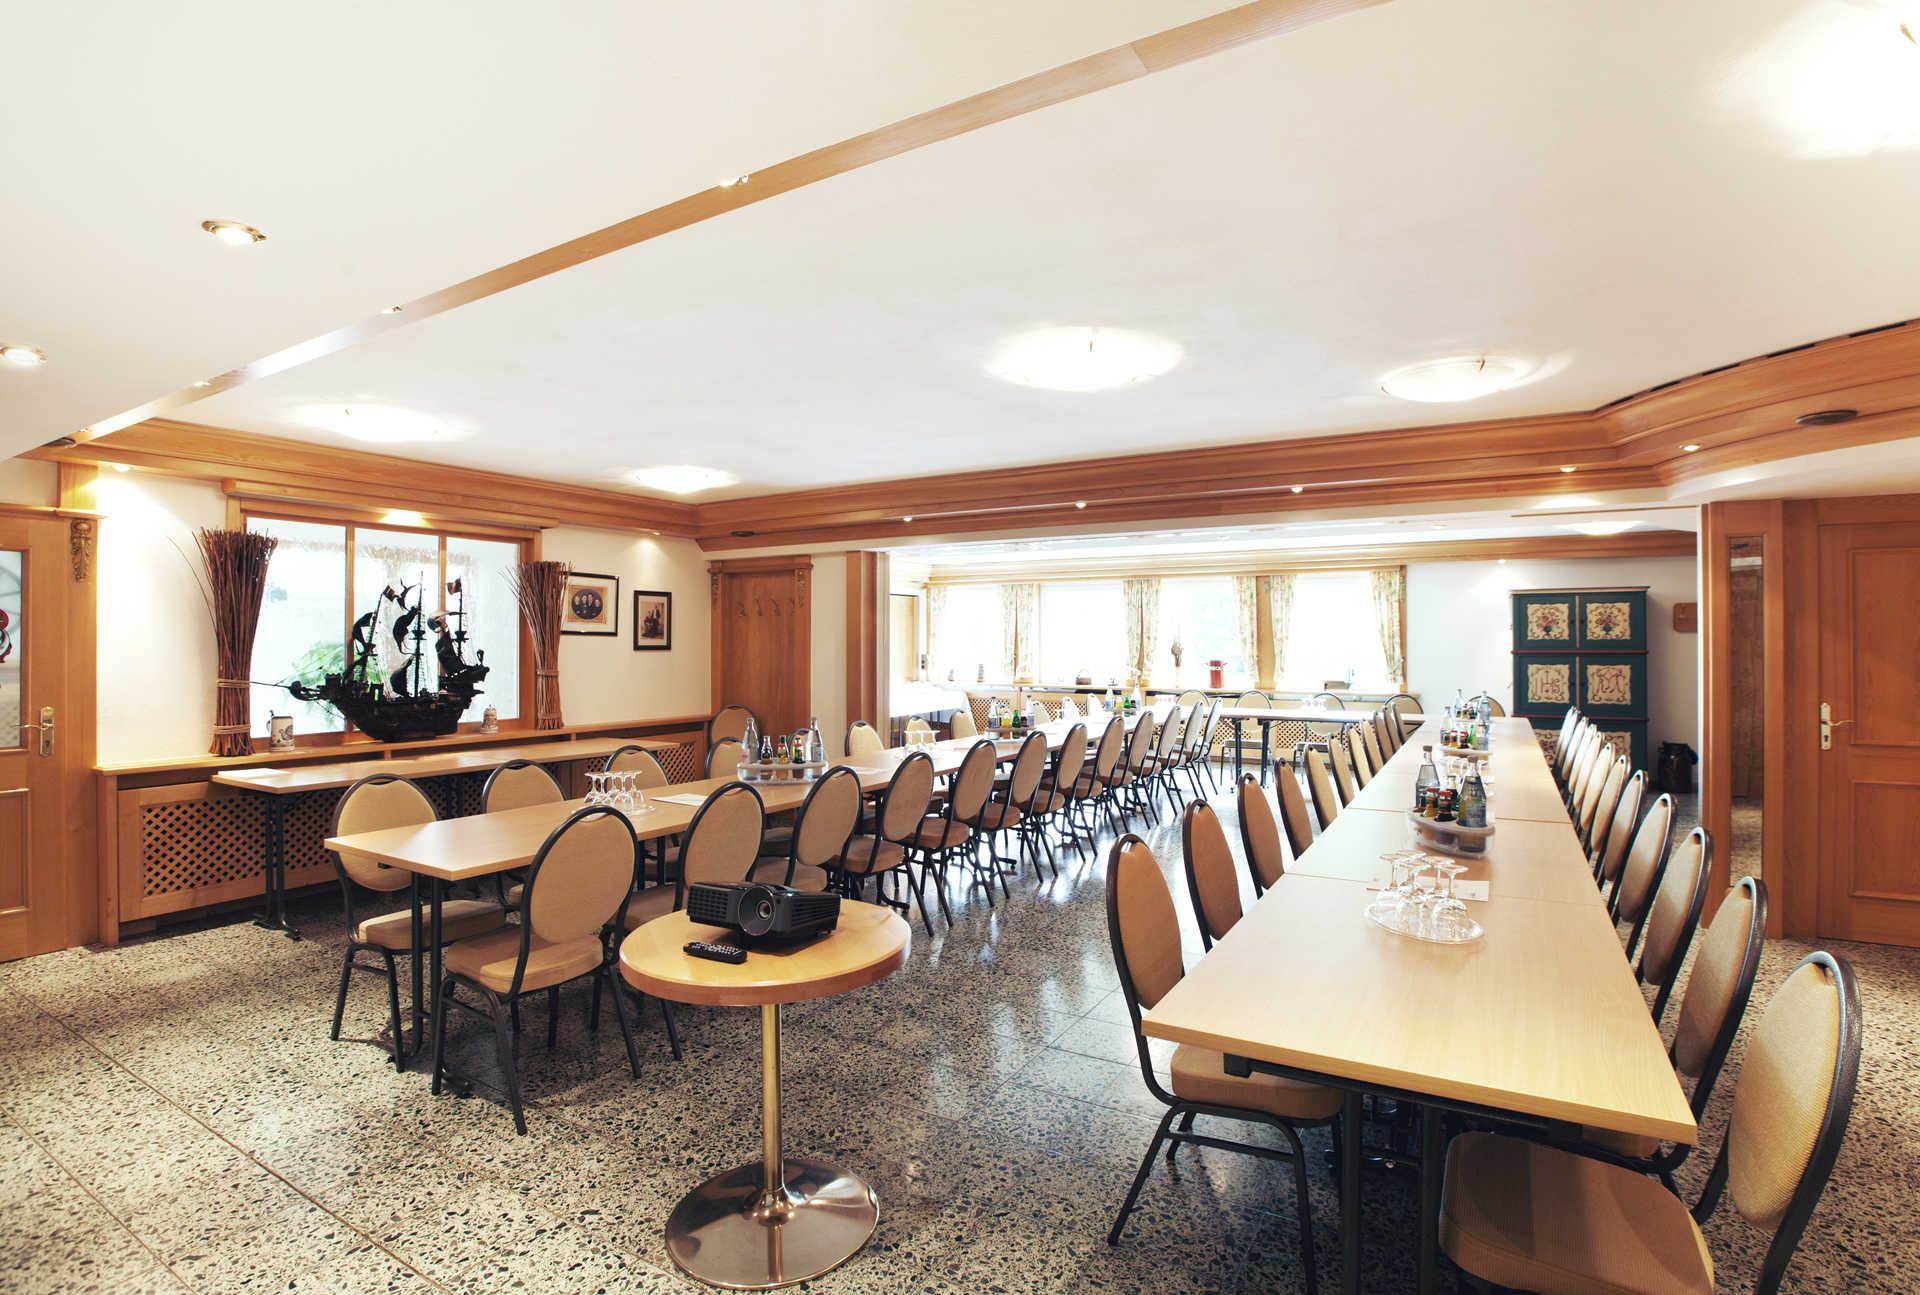 Conference room with tables and projector